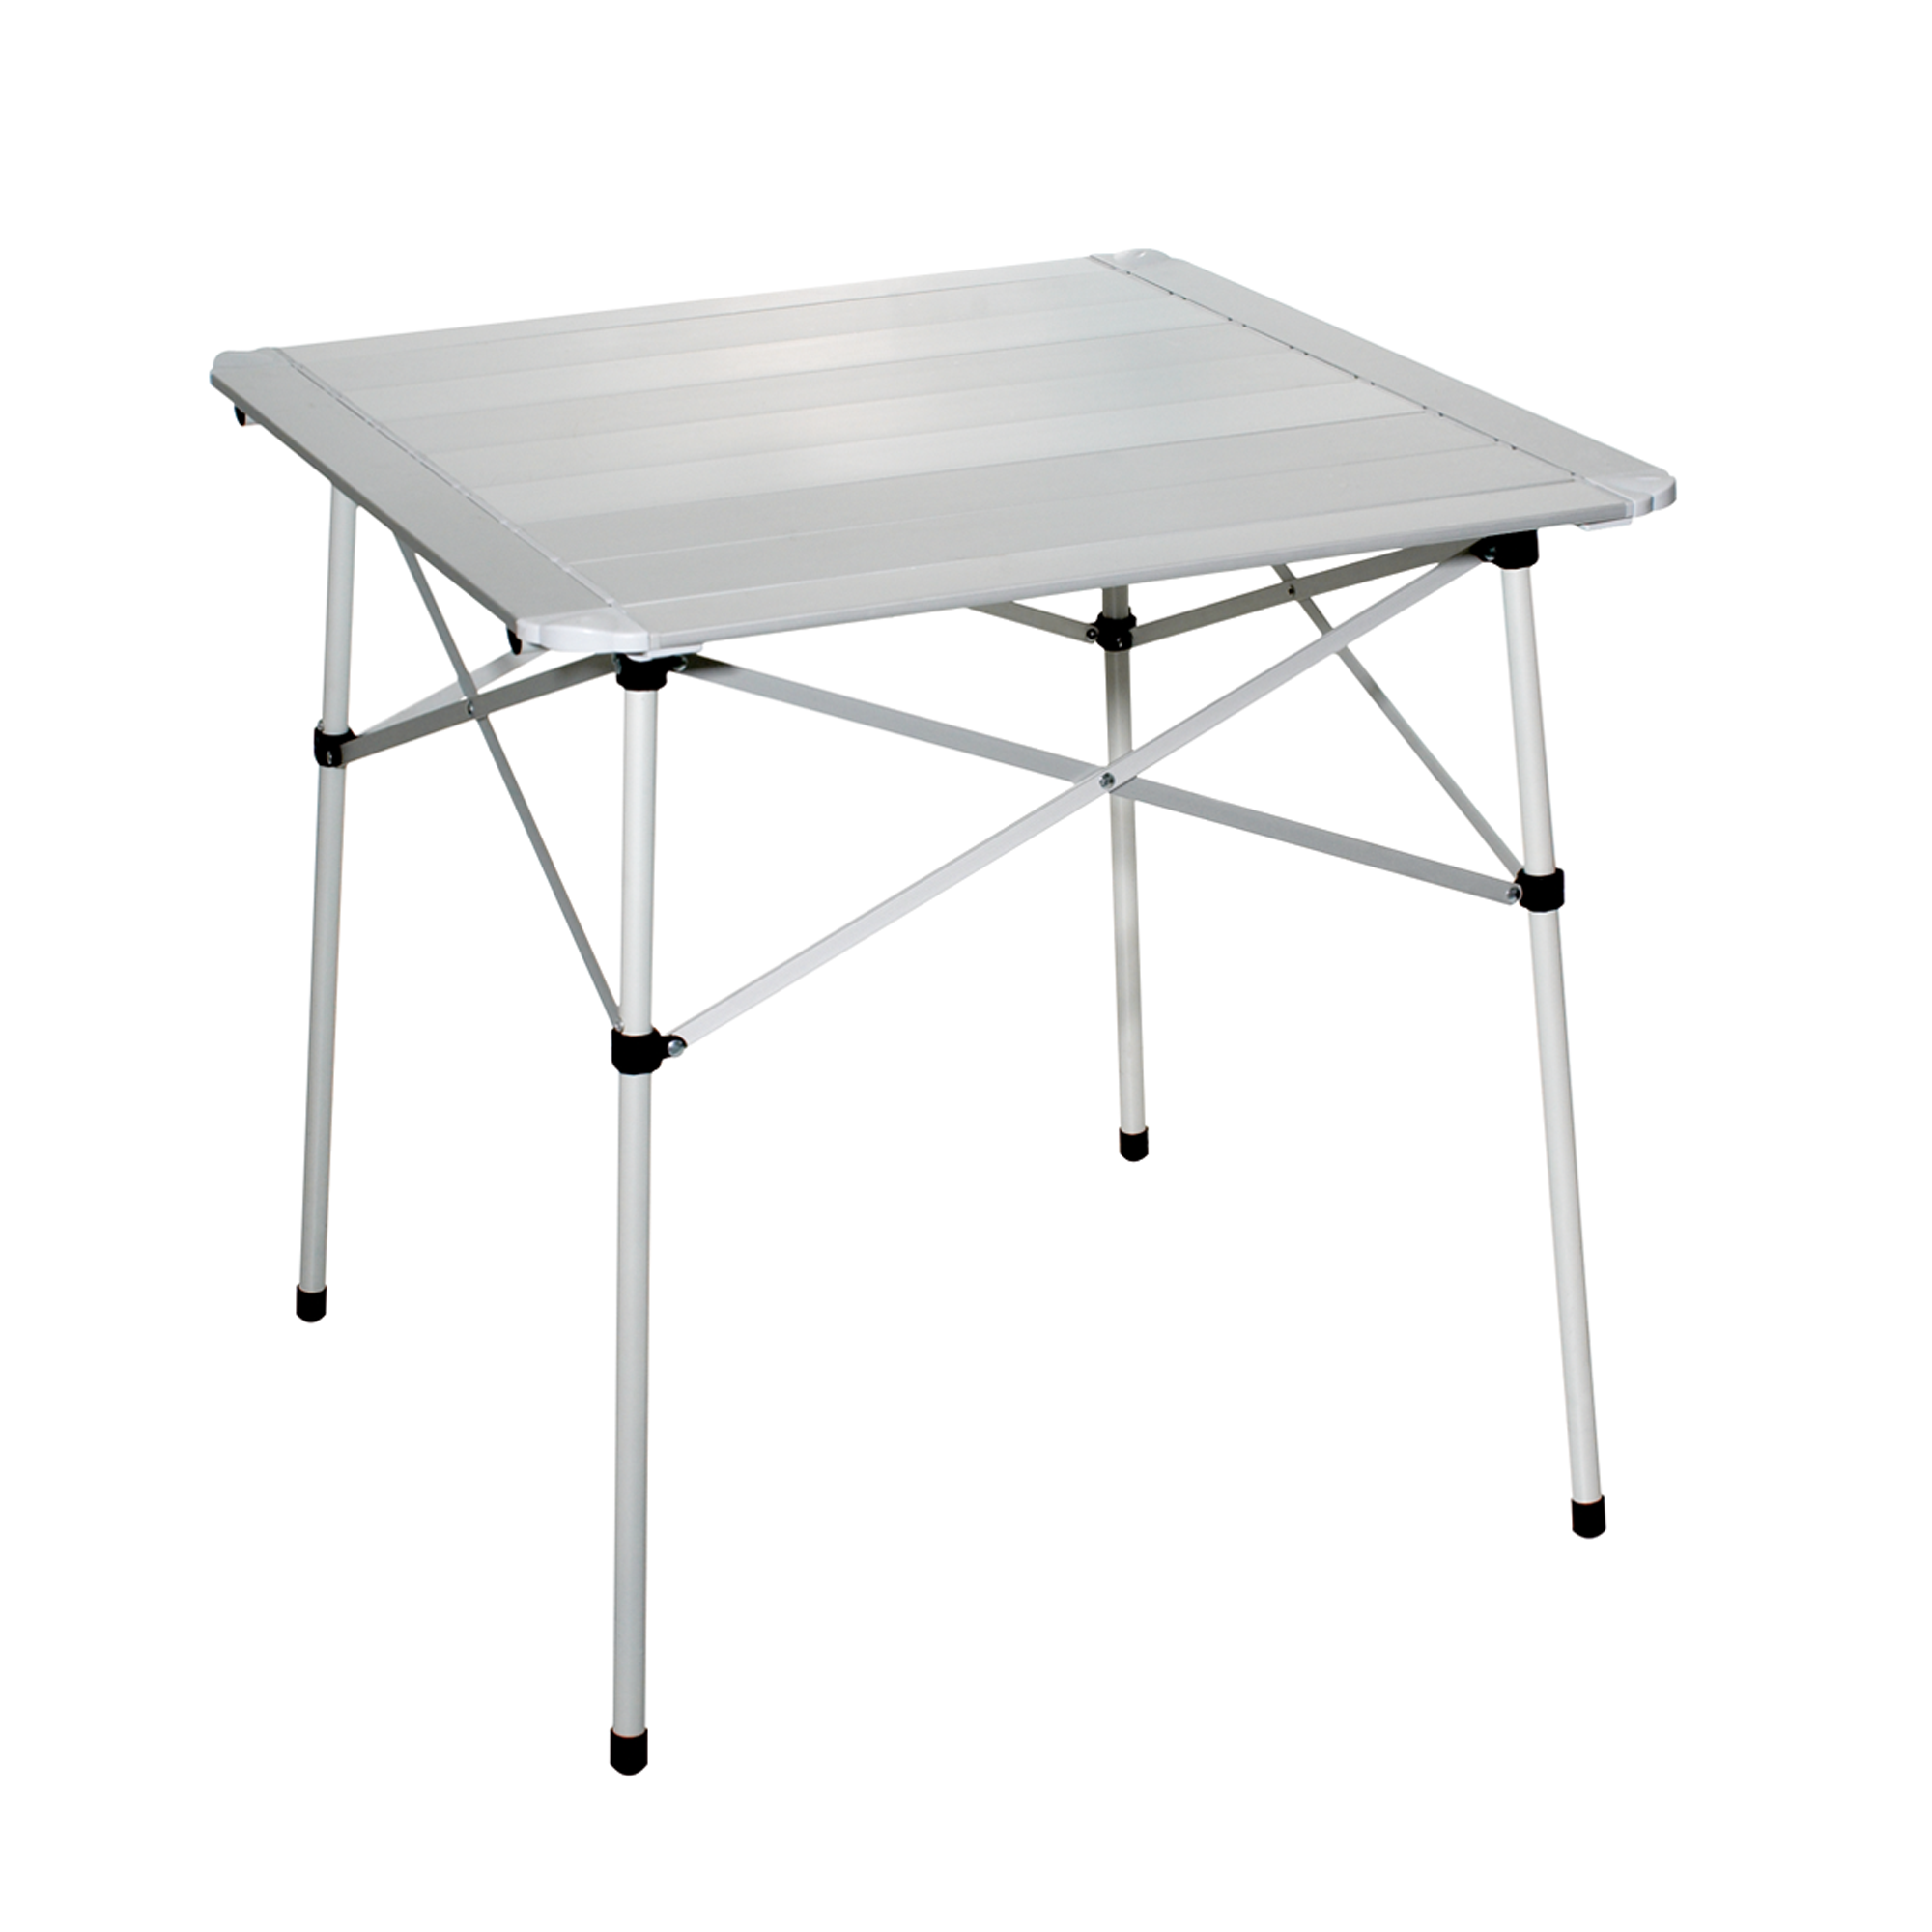 Maison Aluminium Table